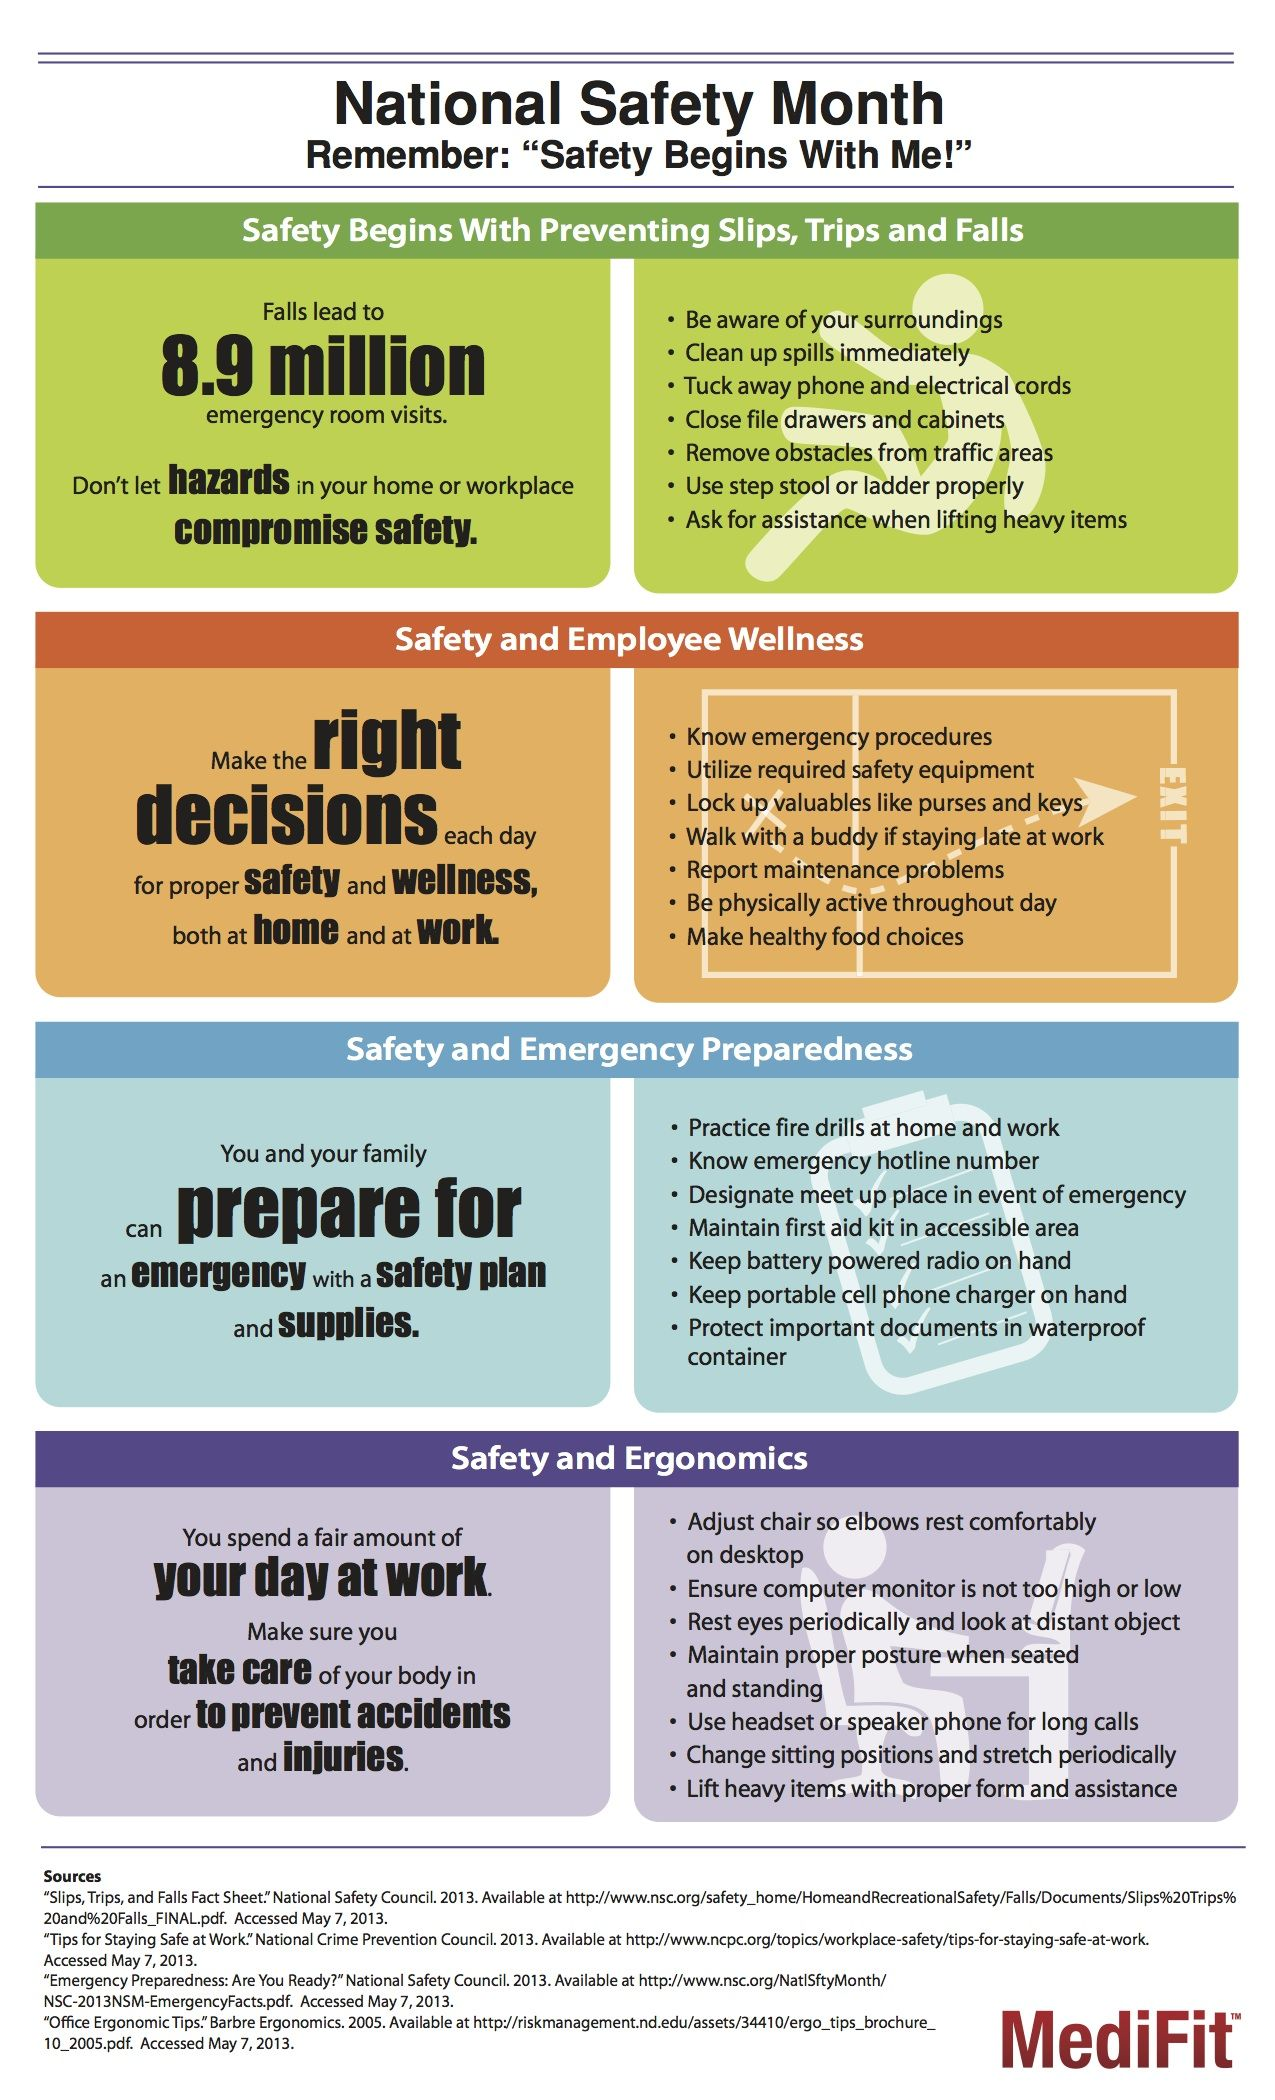 June is National Safety Month! Visualizing Employee